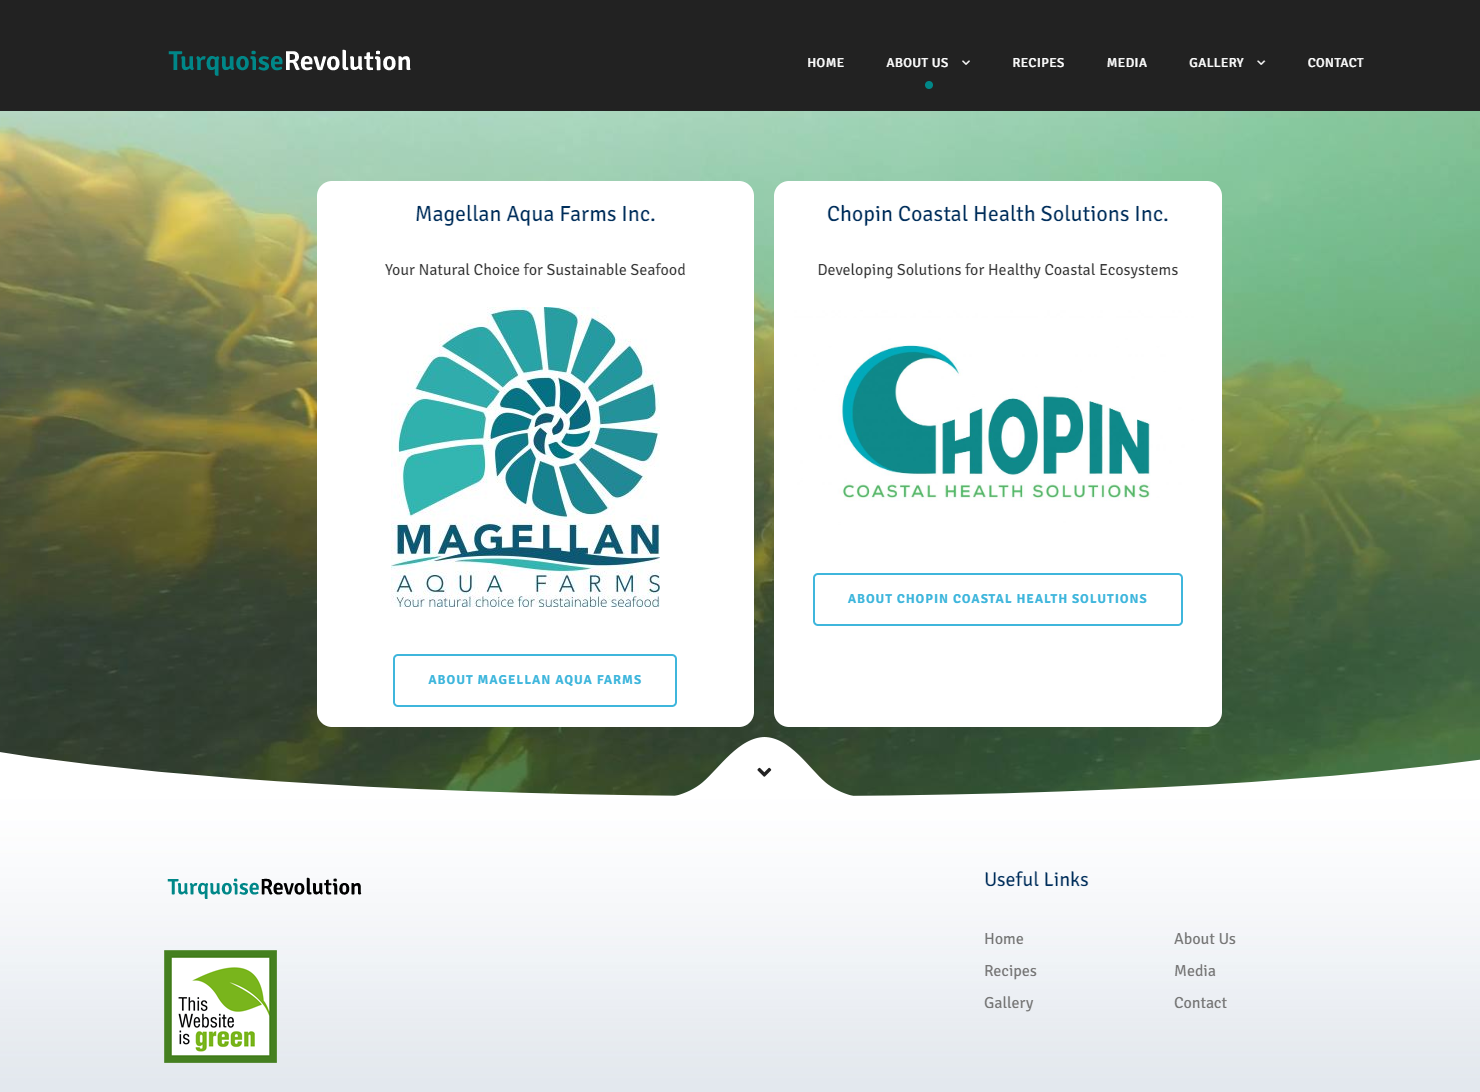 Turquoise Revolution about us page